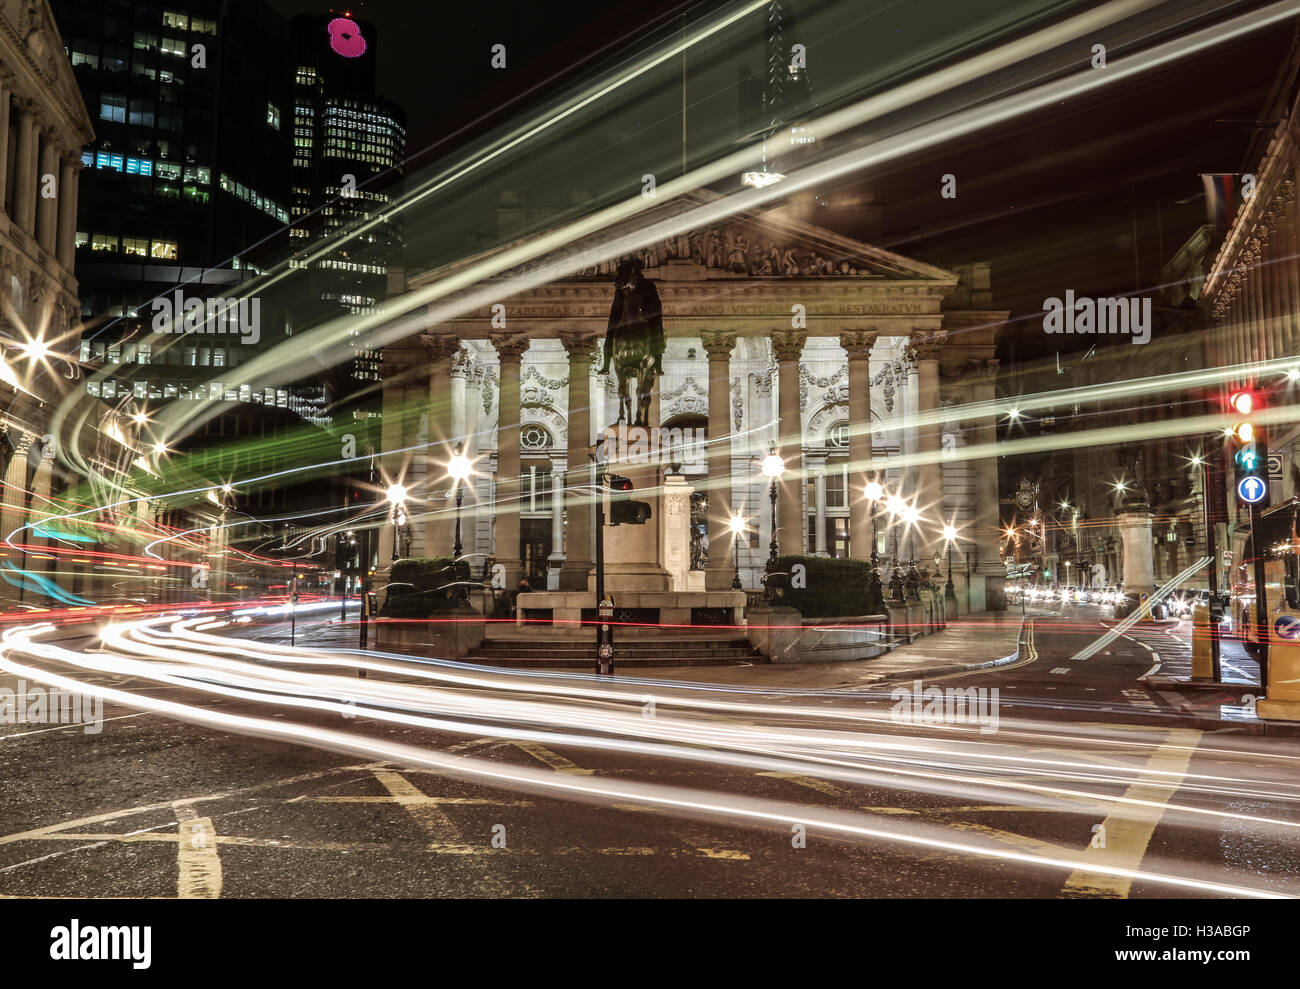 Long exposure shot of Bank Station at night, crossed by streaked lights from a passing double decker bus in London. - Stock Image